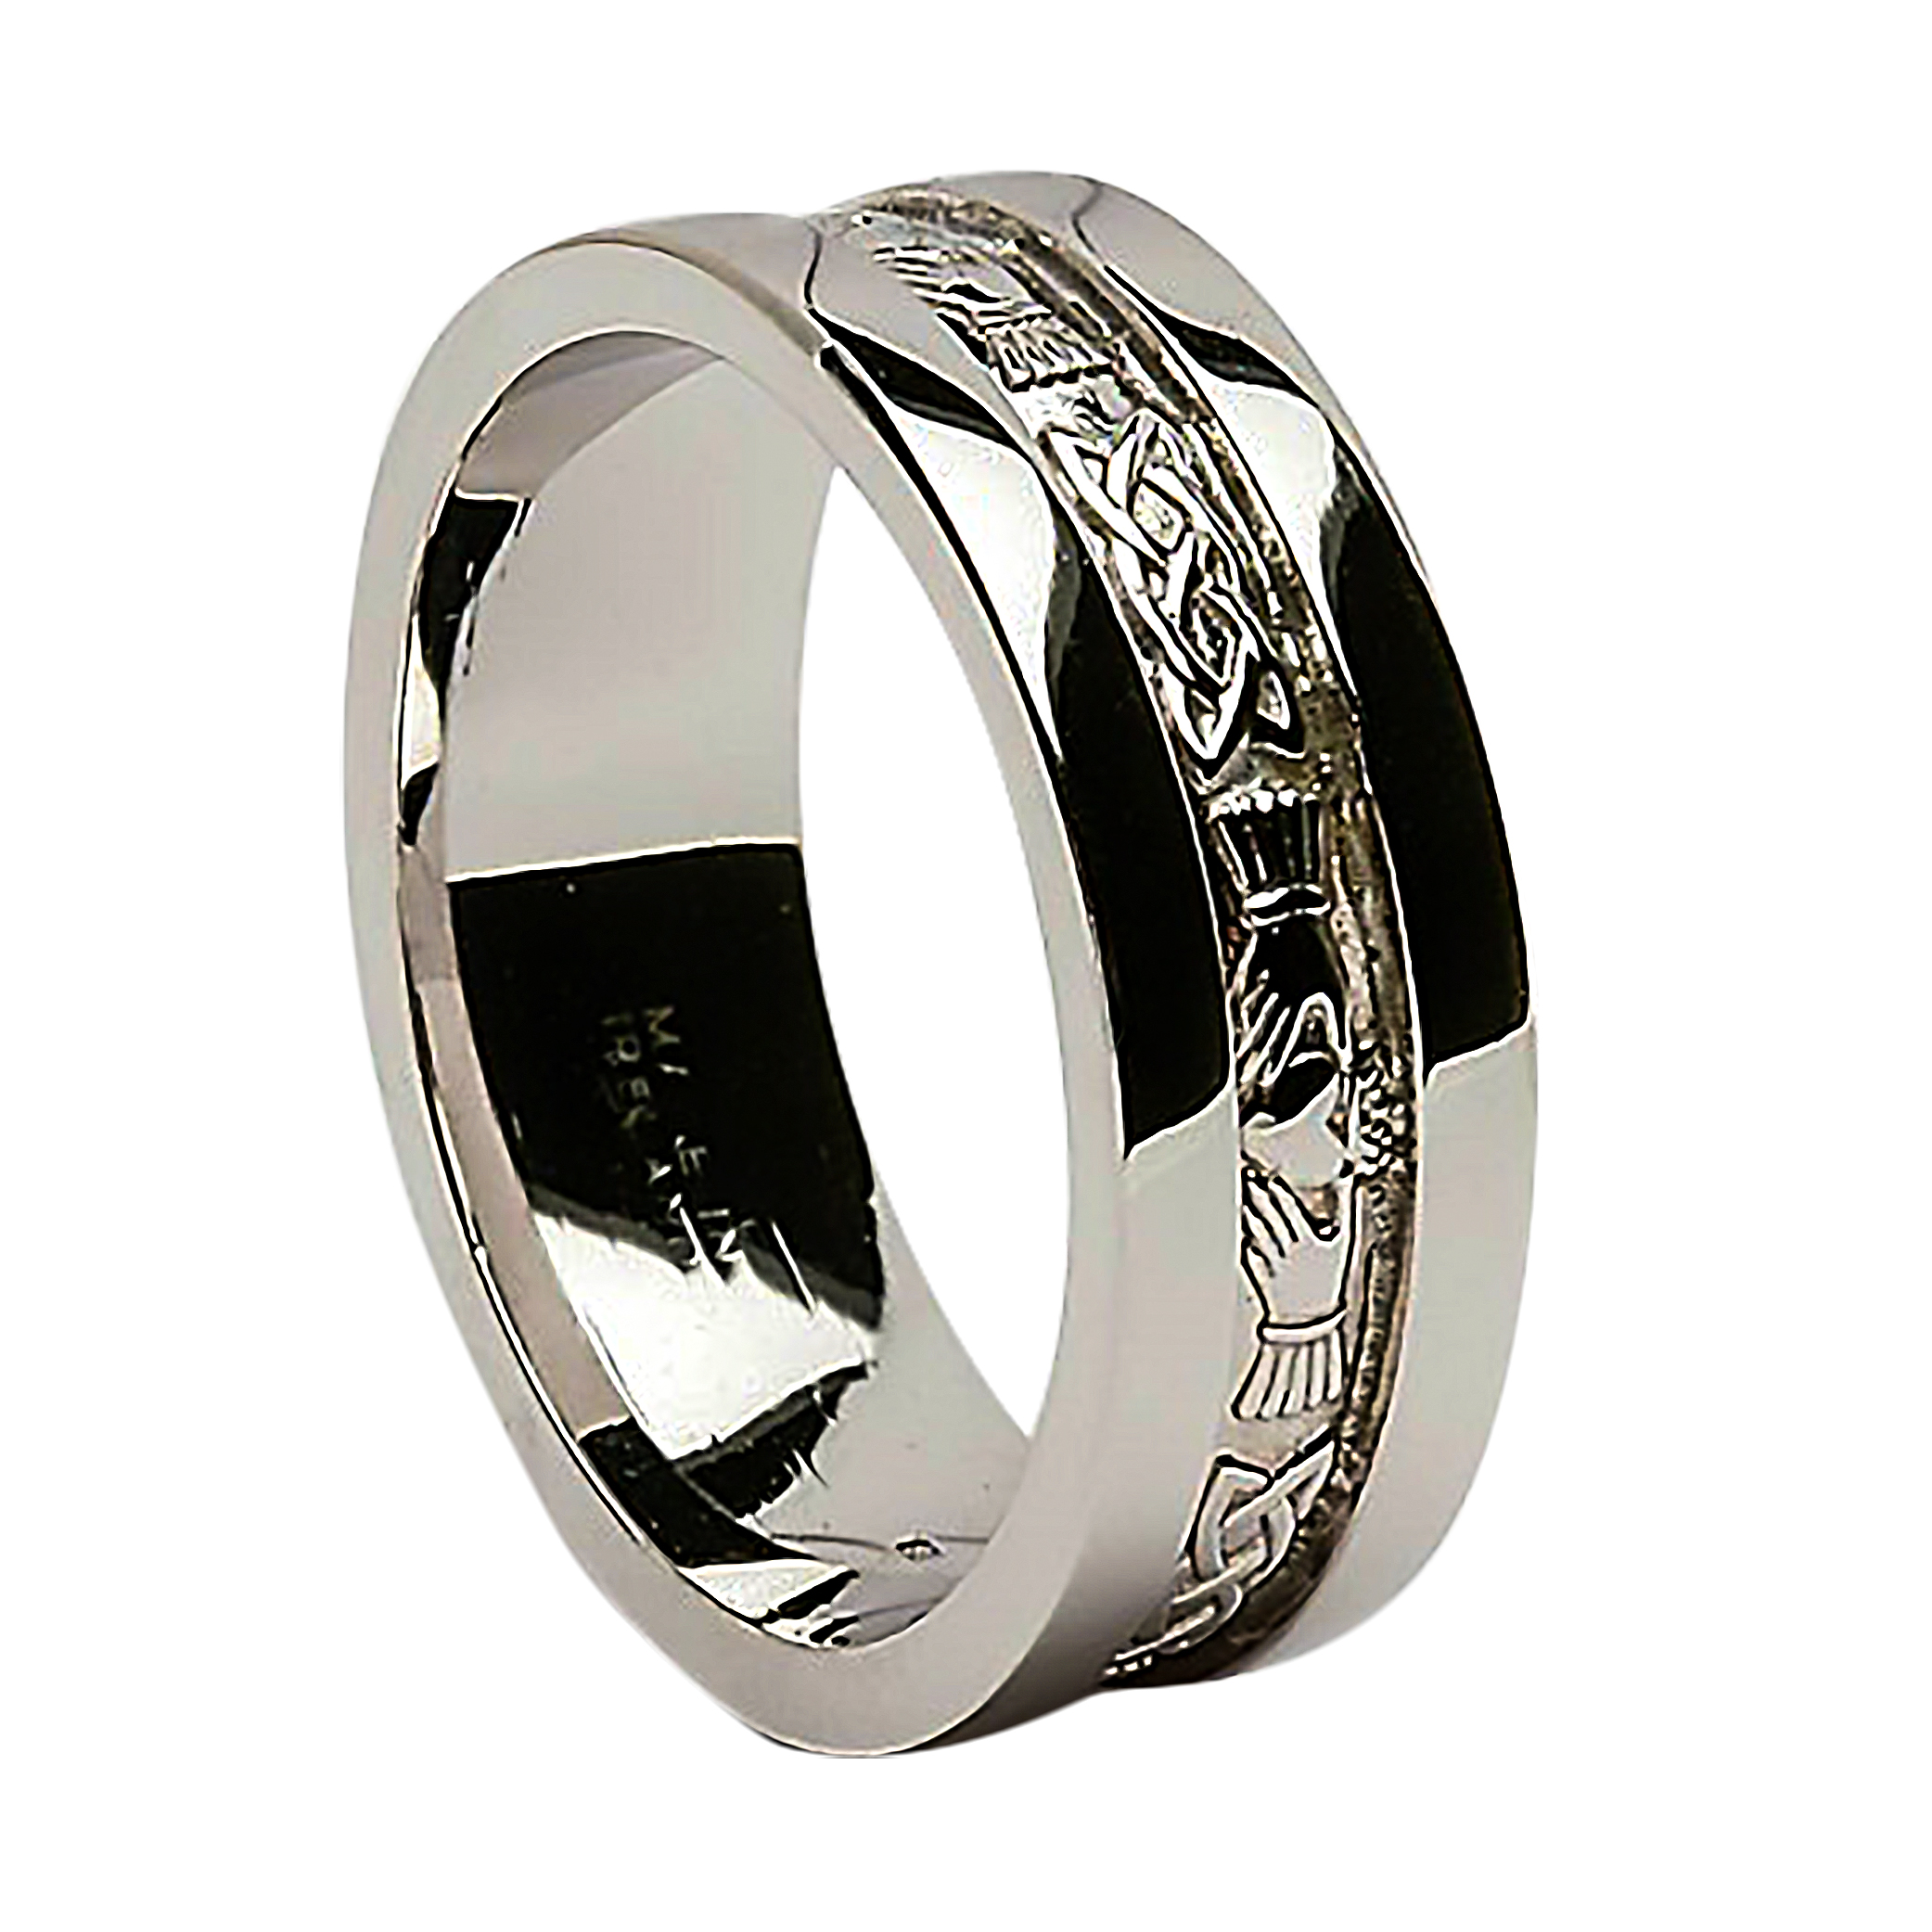 gaelic kelsall ring engagement celtic rings harriet wedding